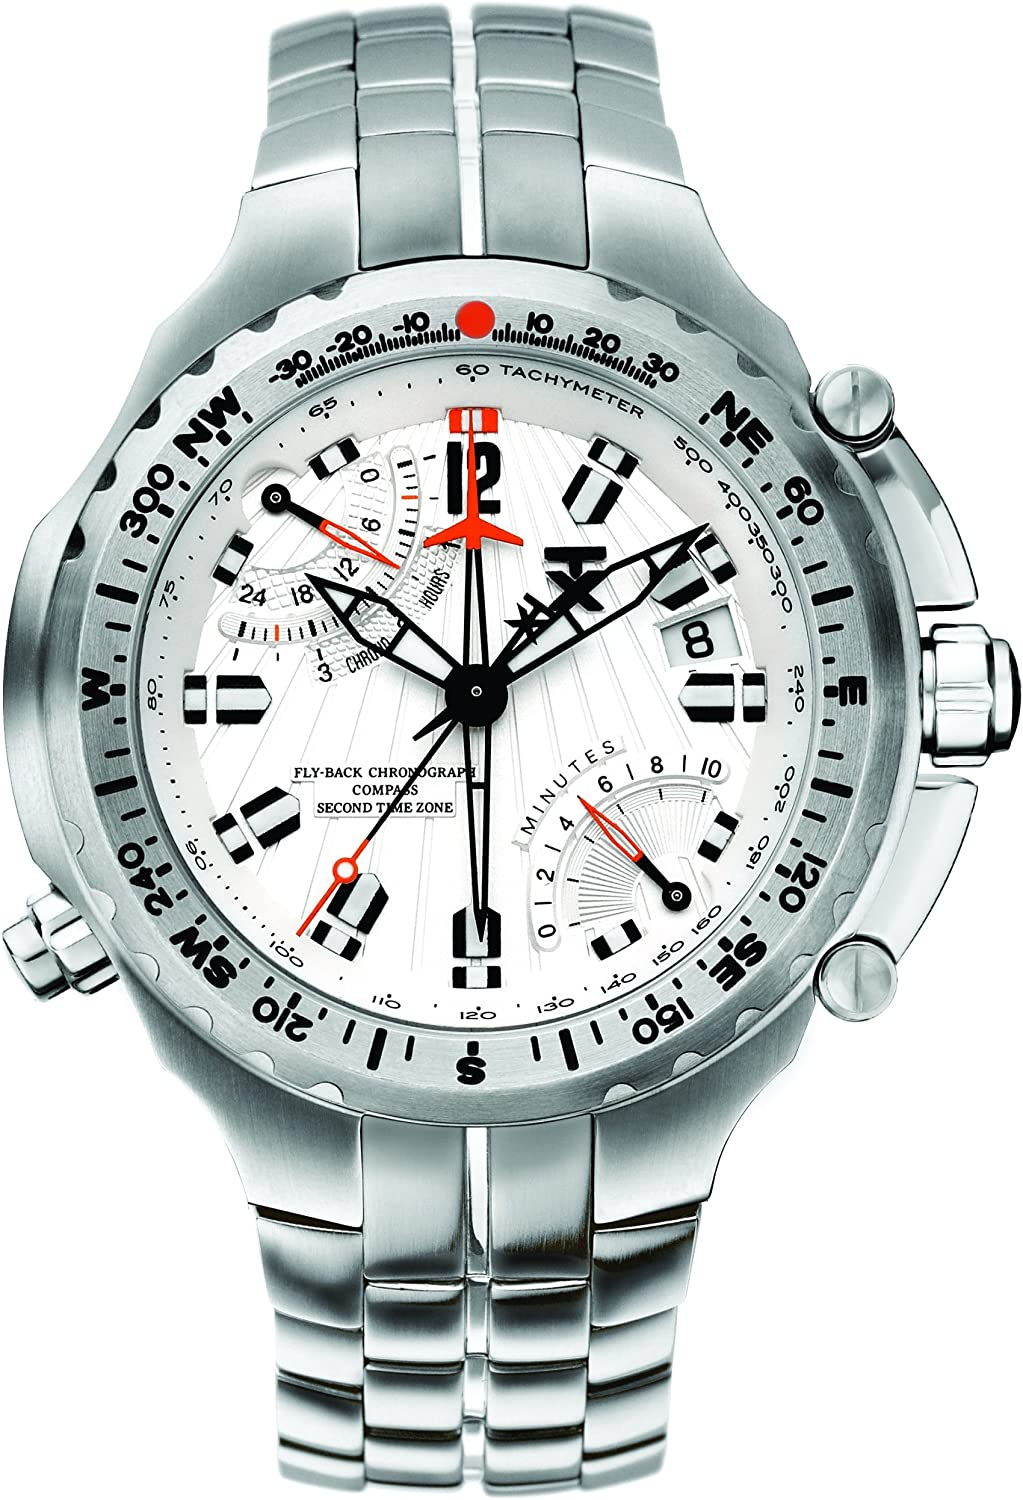 TX Men s T3B861 700 Series Sport Fly-Back Chronograph Dual-Time Zone Watch